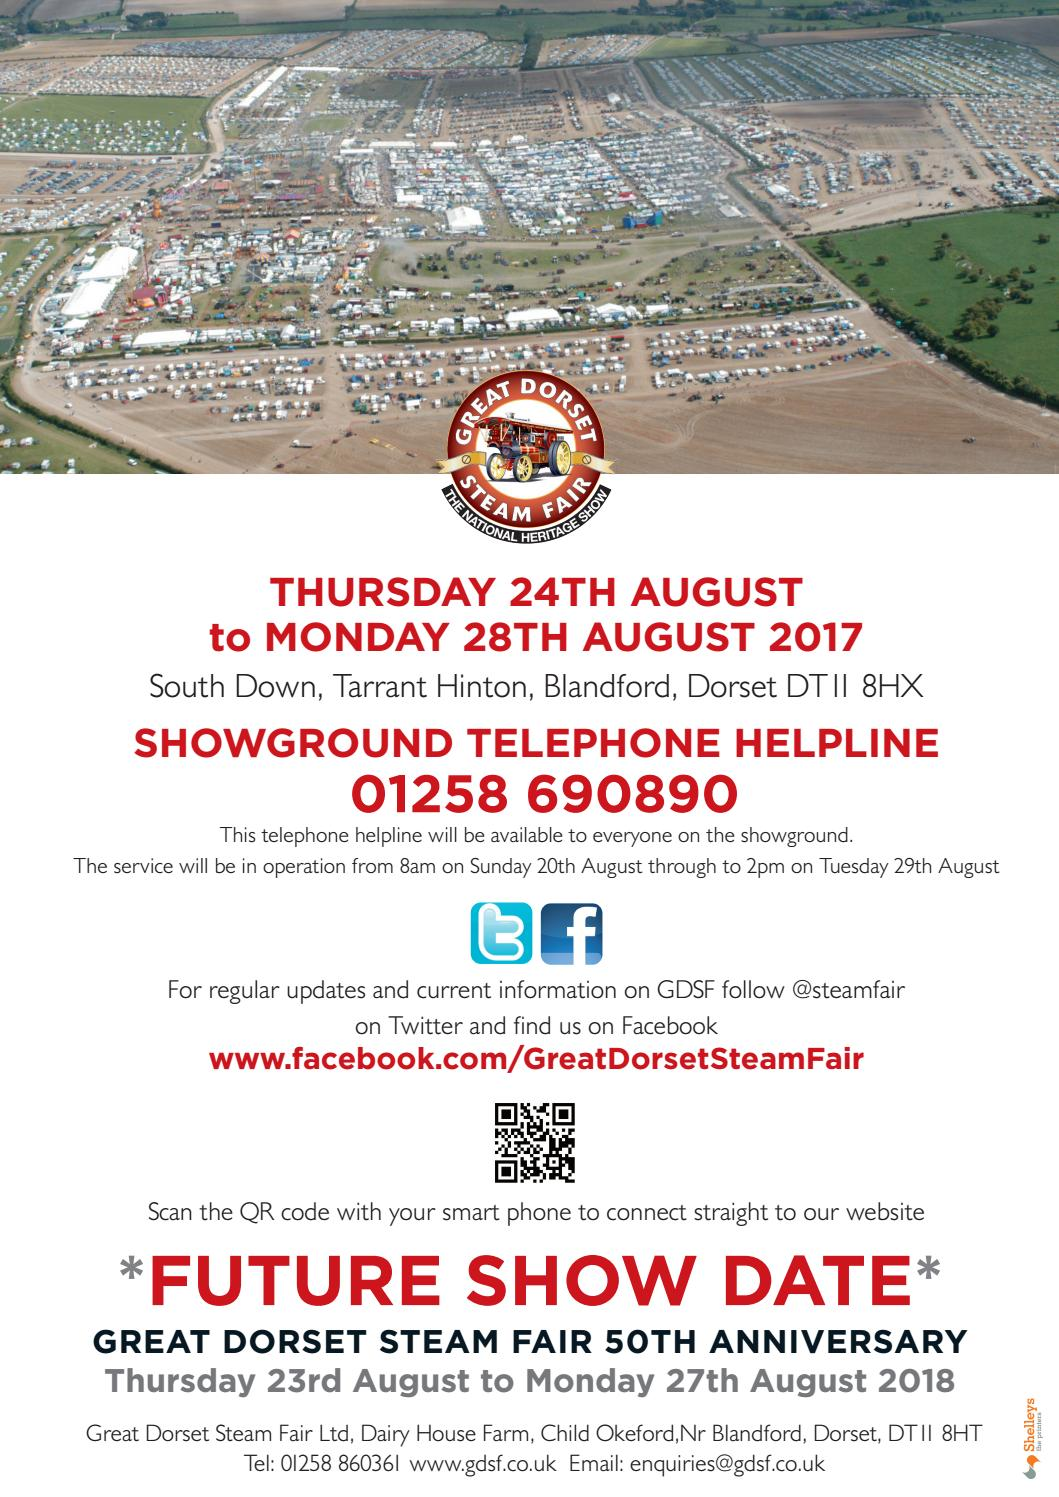 Great Dorset Steam Fair Trade and Exhibitor 2017 by Shelleys